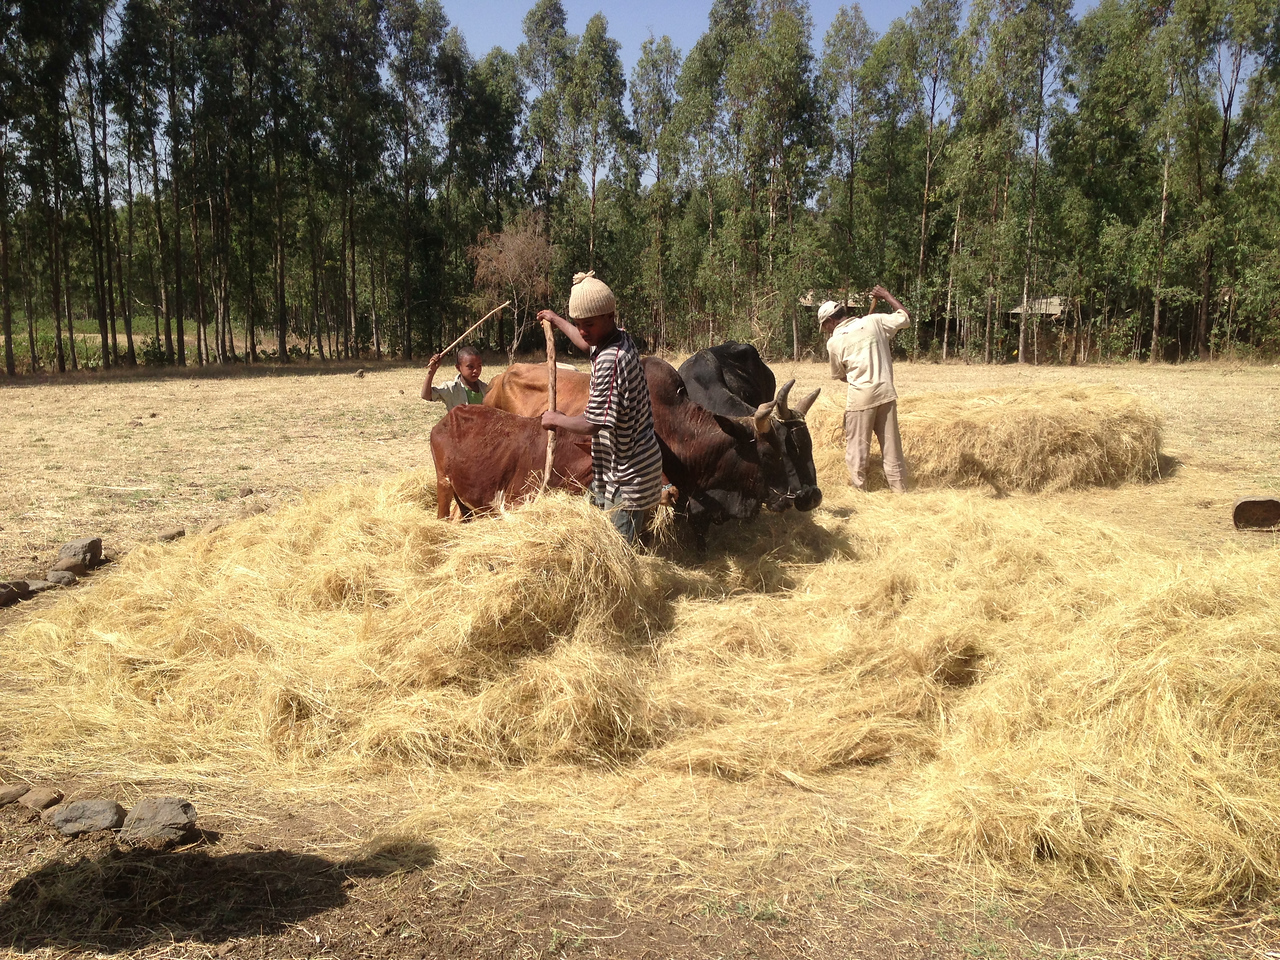 Growing teff is an important source of income for the school